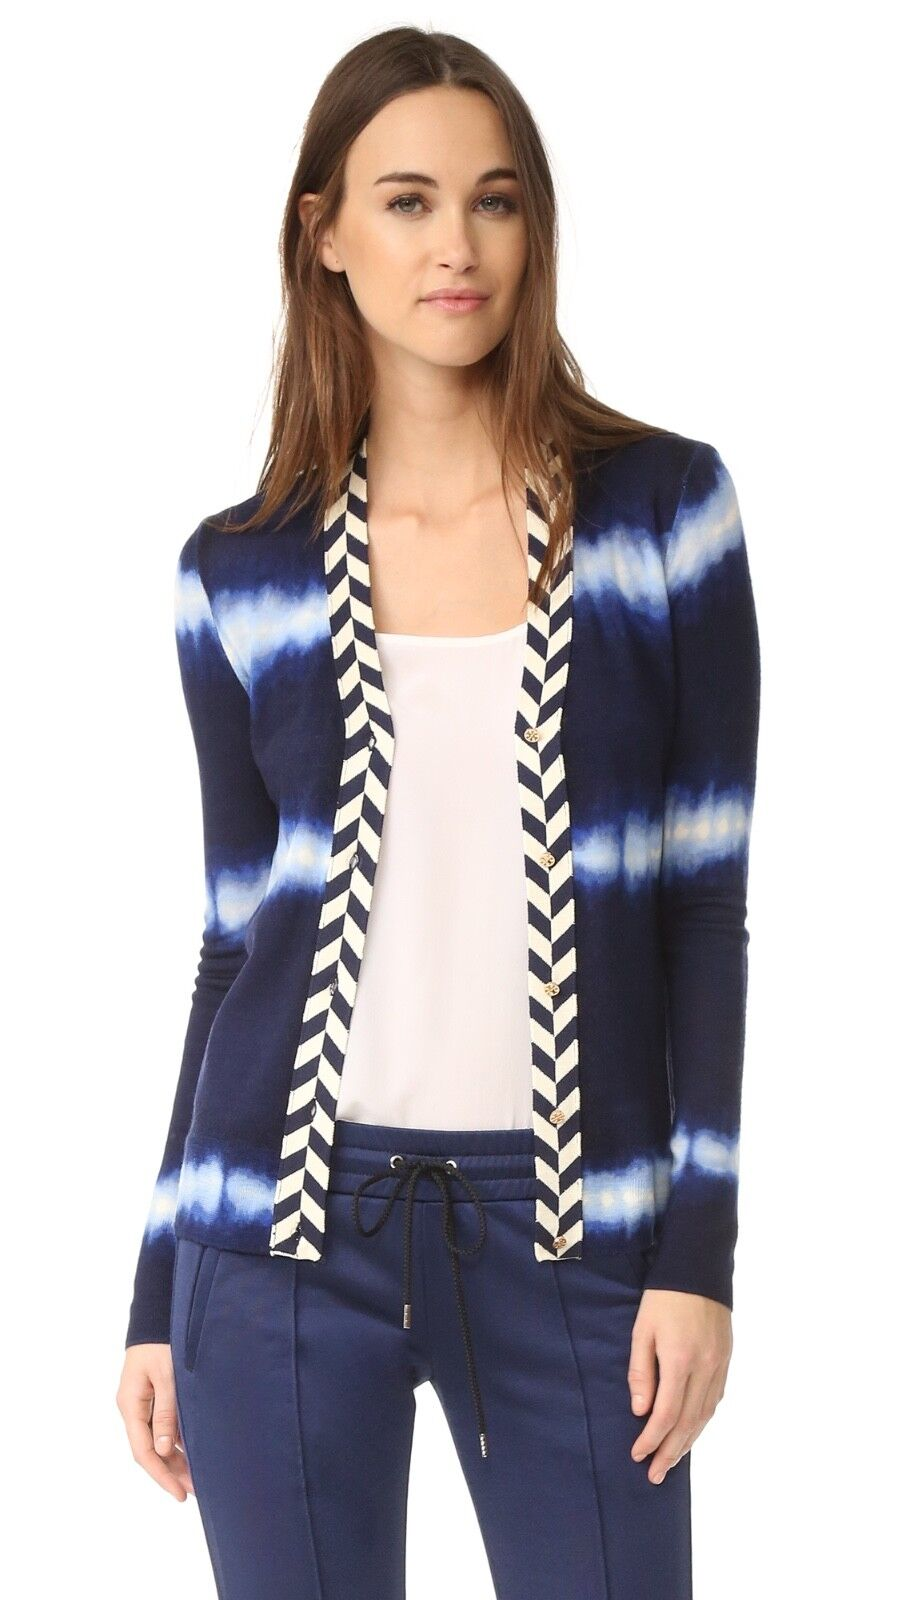 Tory Burch Lorna Tie Dye Cardigan Sweater S 2 4  Resort 2017 NWT